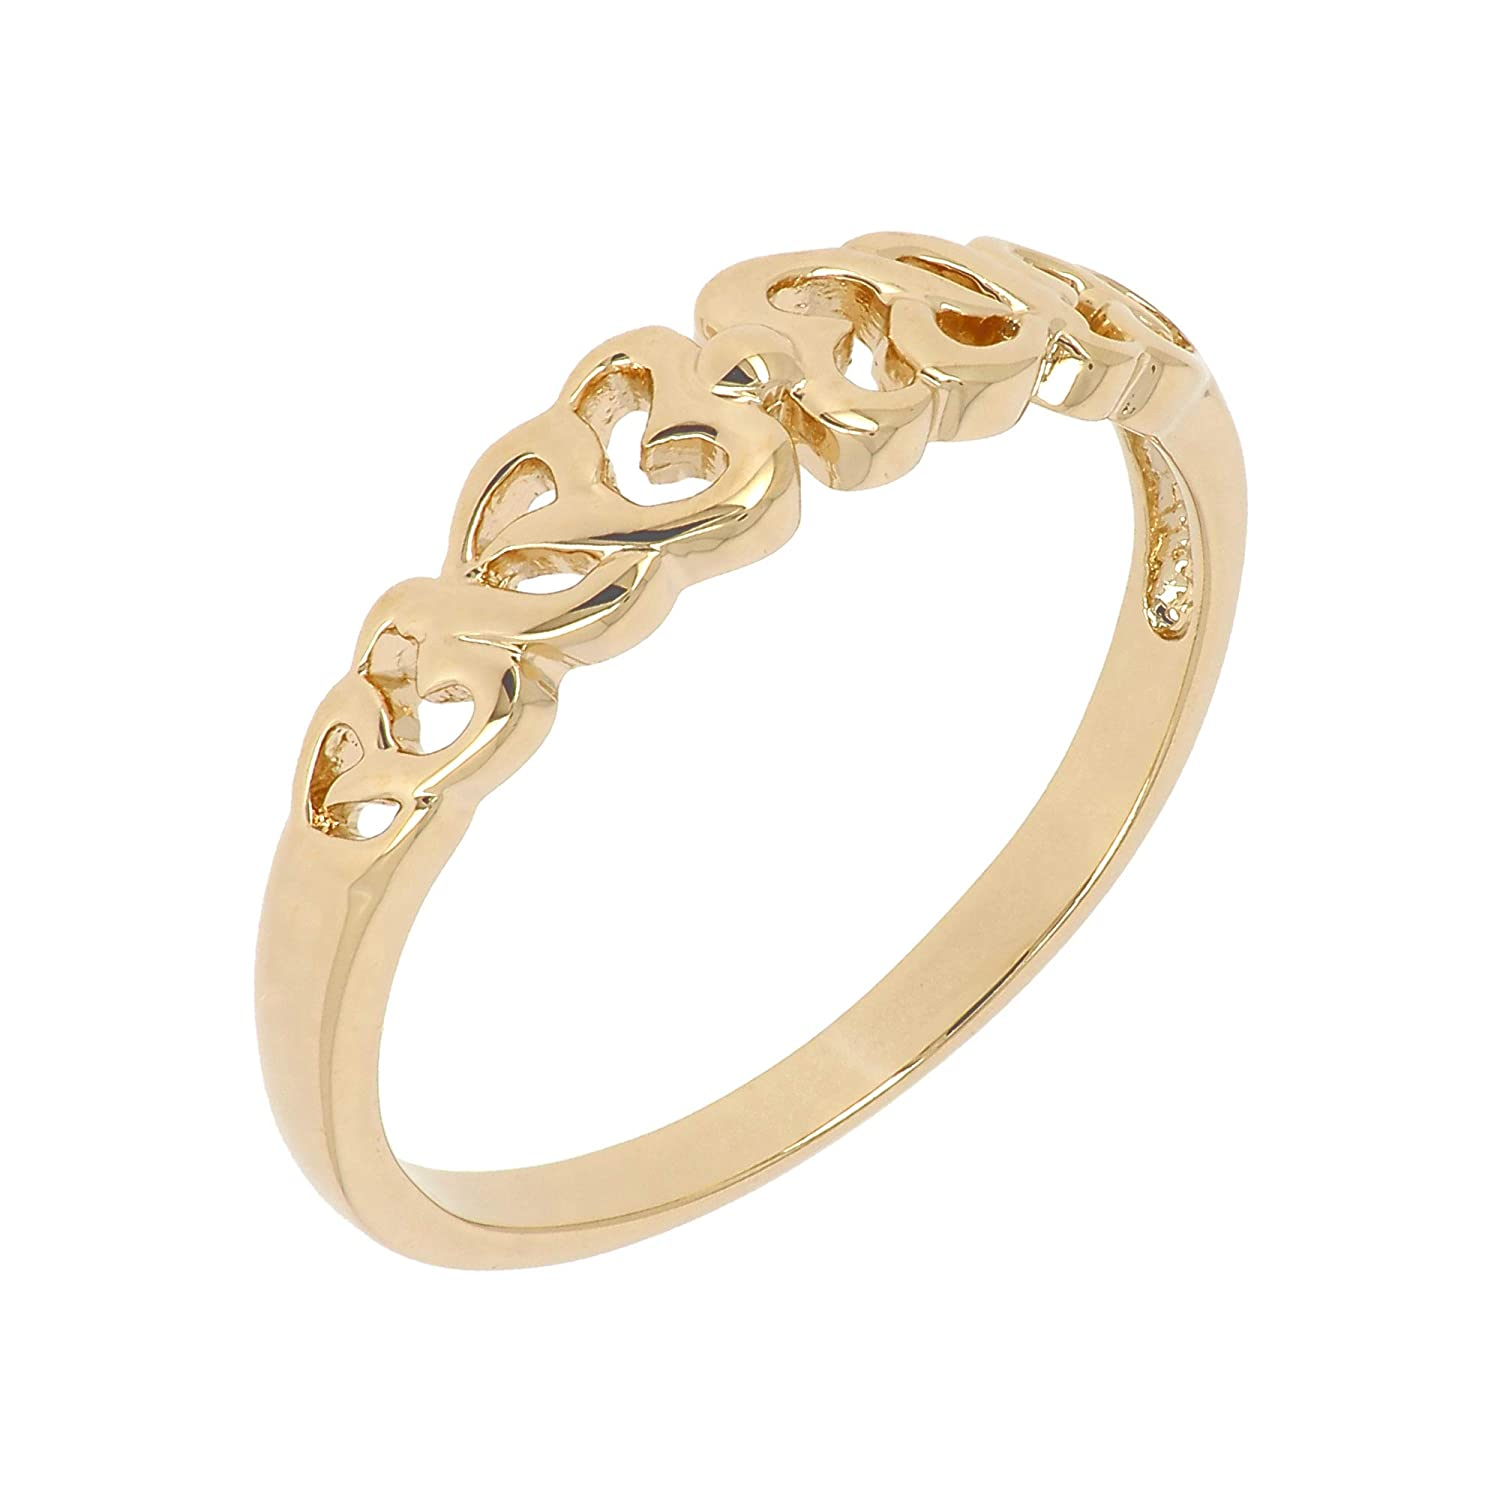 Ring YOU /& ME Zirconium Gold plated 18K 750//000 5 Microns Jewelry Women